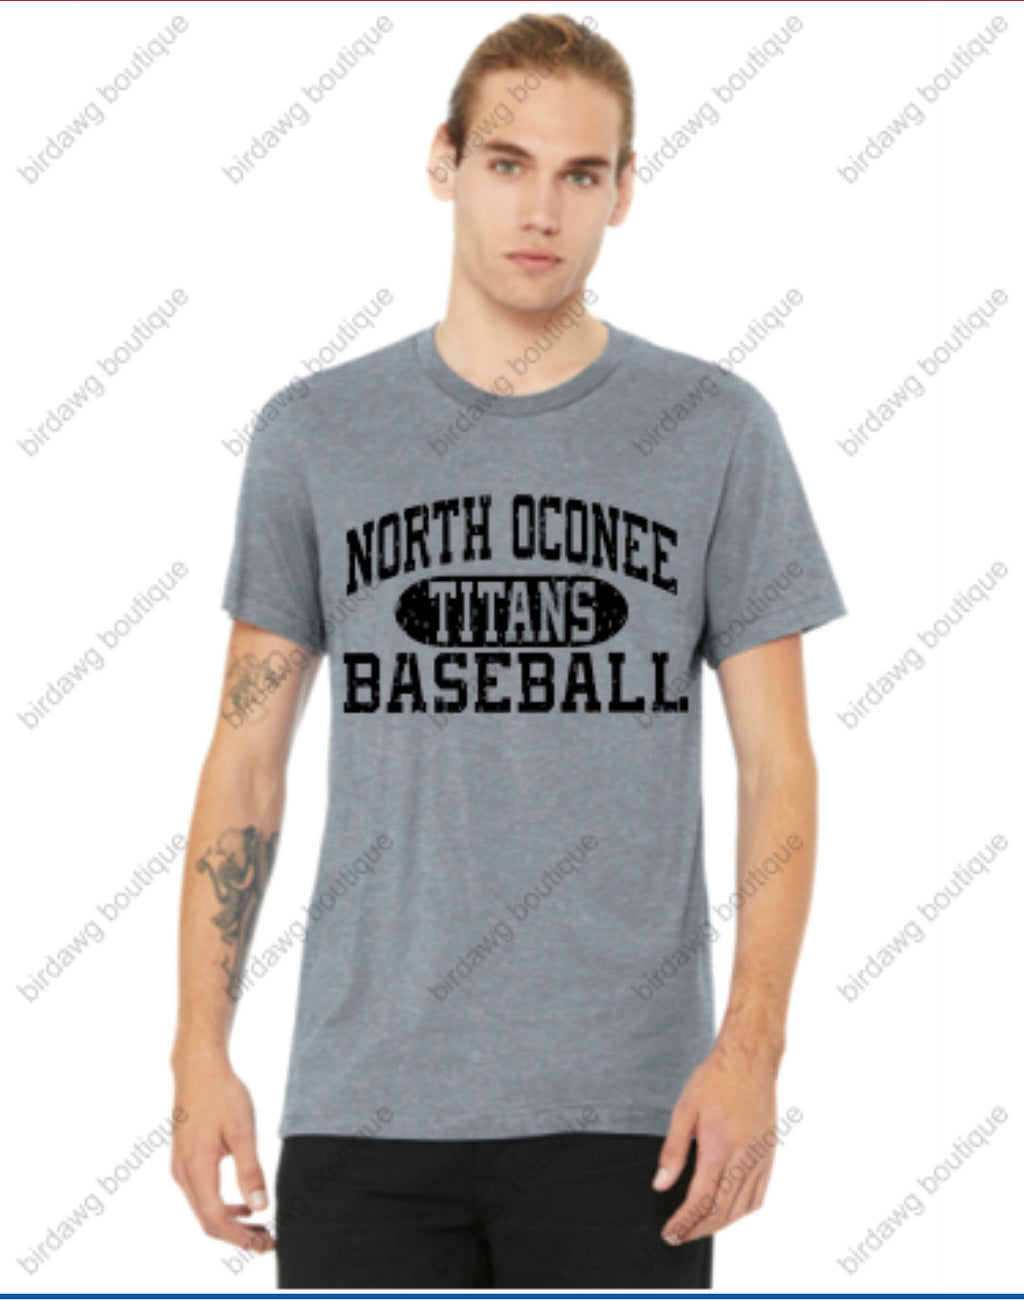 North Oconee Baseball T-shirt